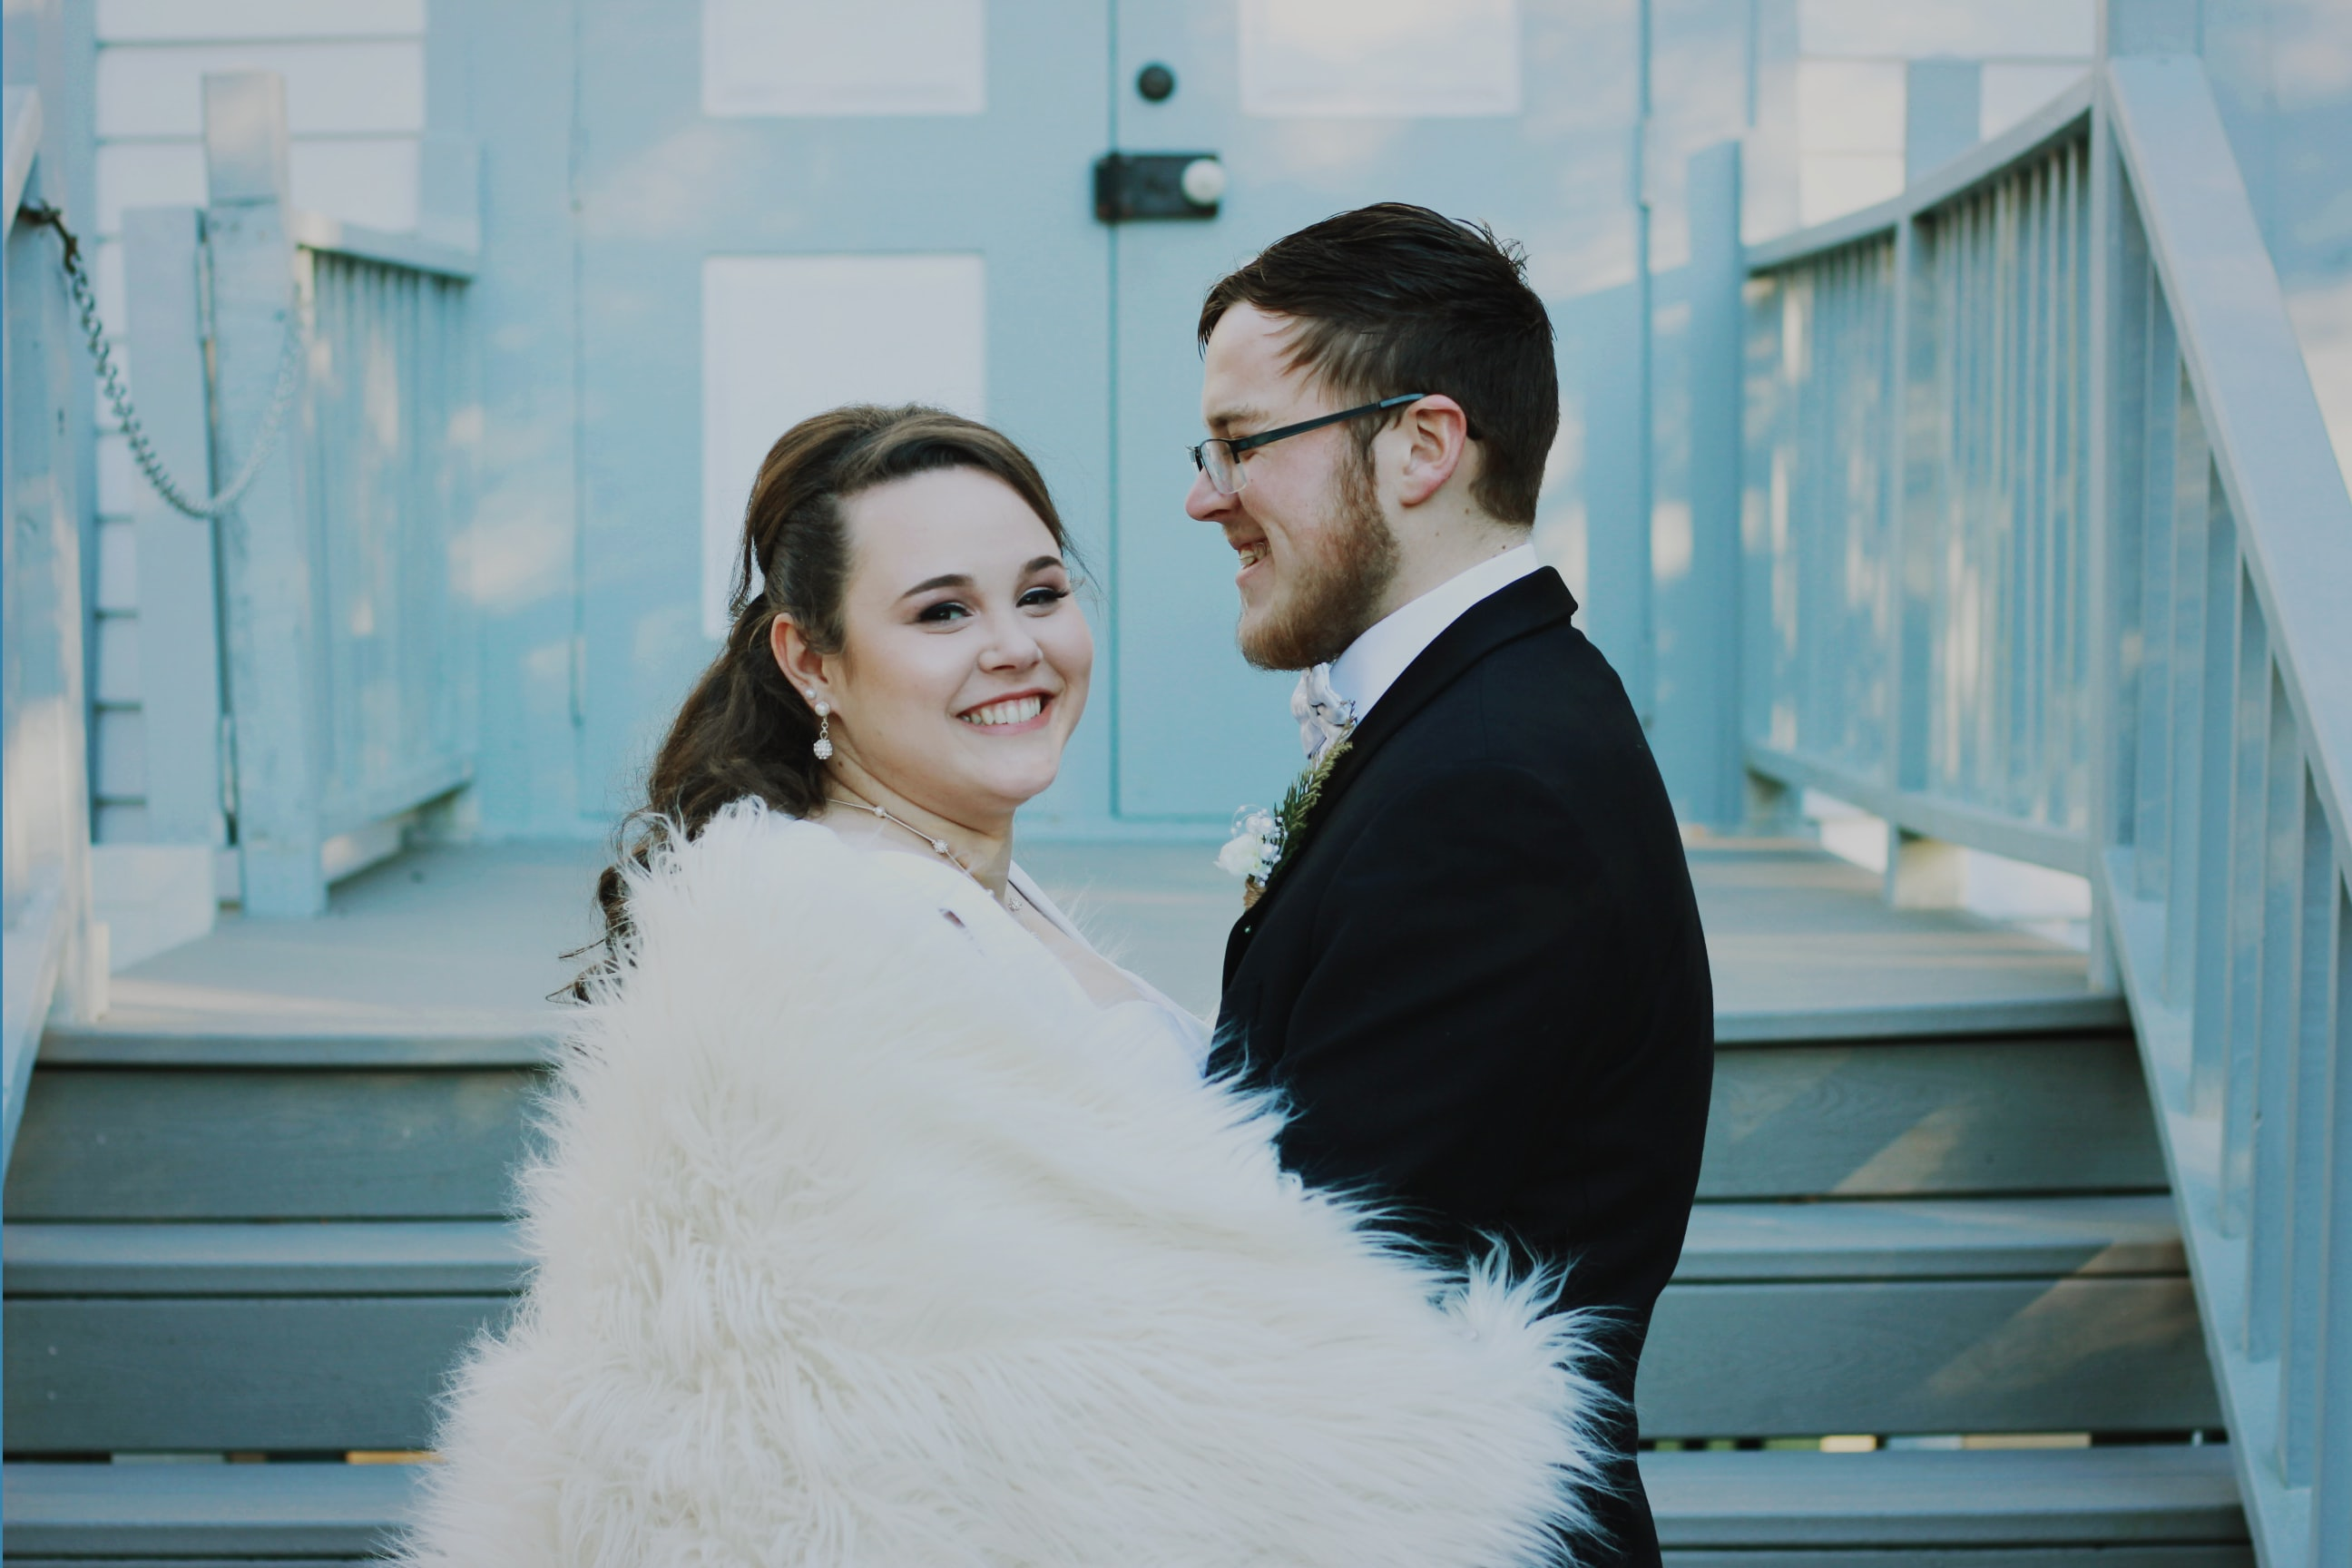 wedding couple near stair during daytime photography